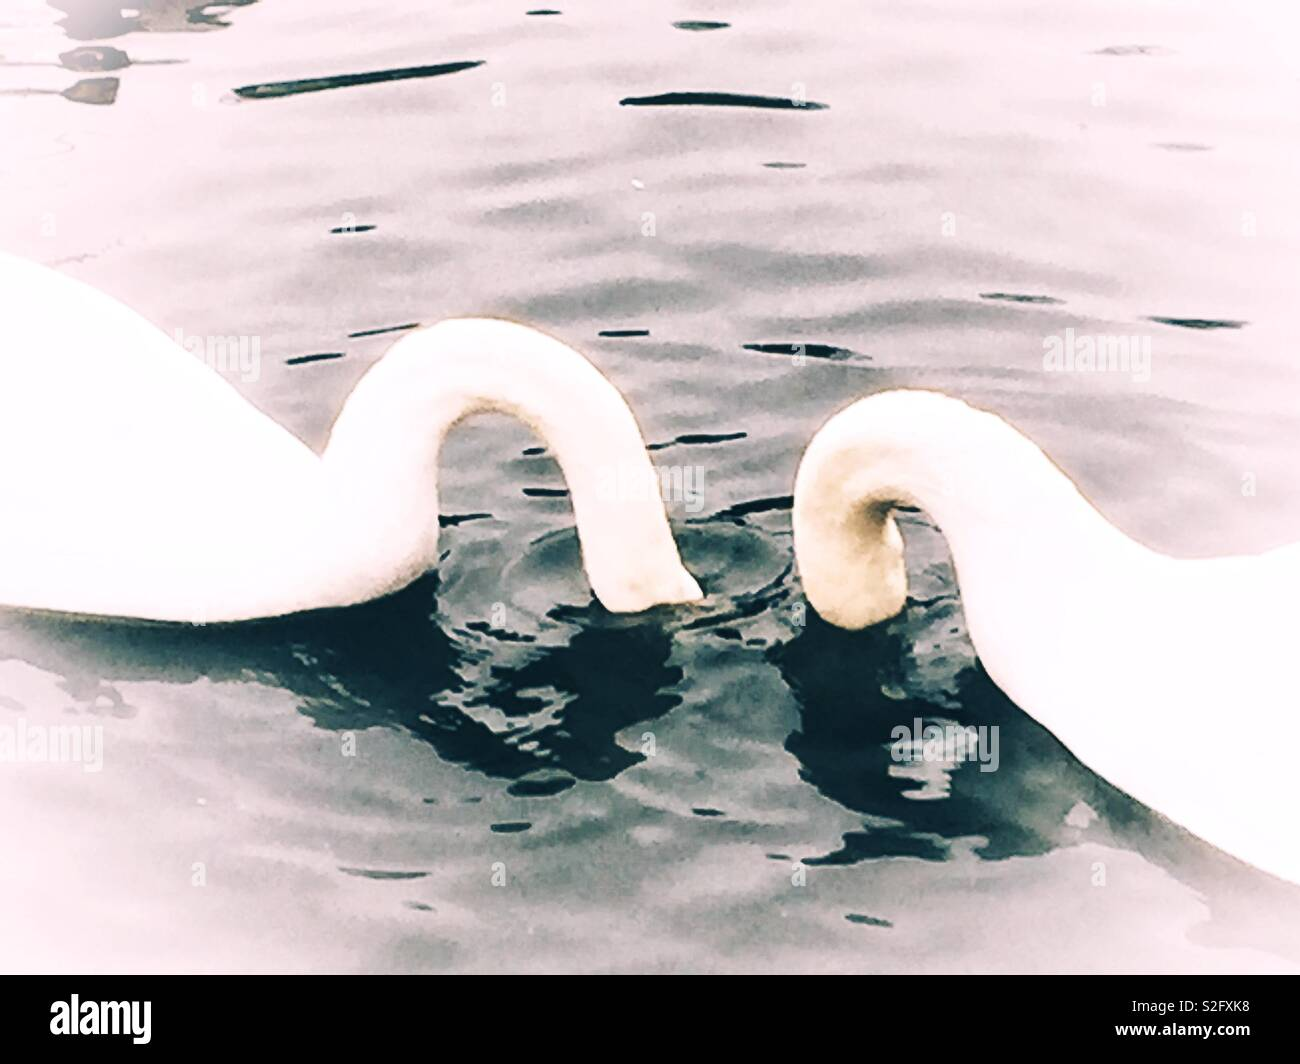 A PAIR OF SWANS - Stock Image